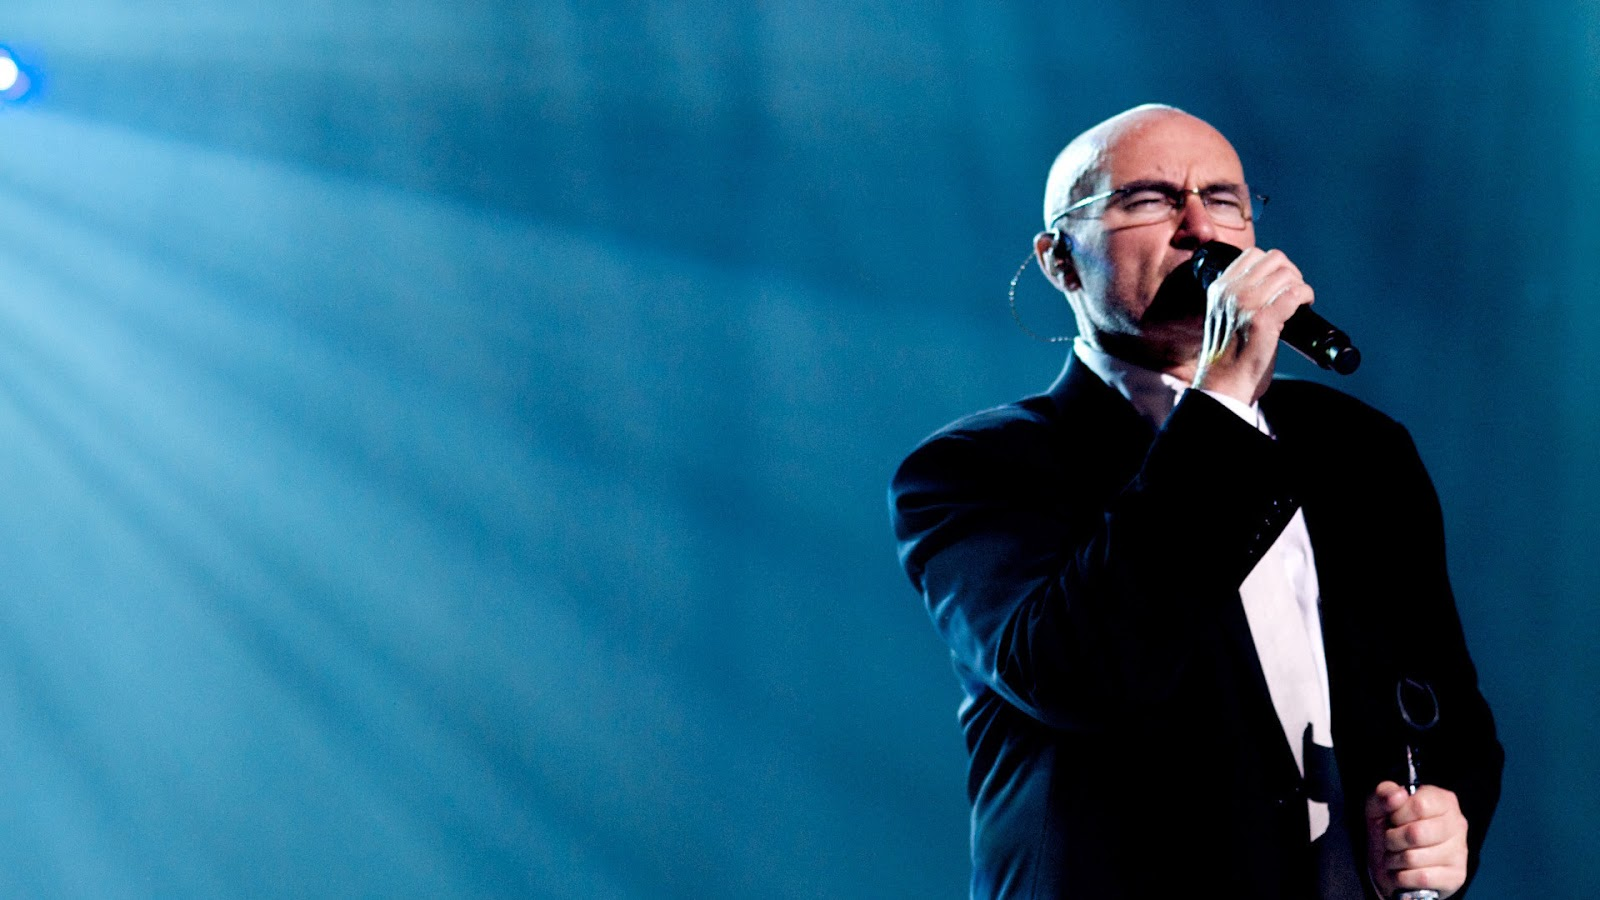 """[Exclusive] Listen to Phil Collins sing """"In the Air Tonight"""" LIVE"""